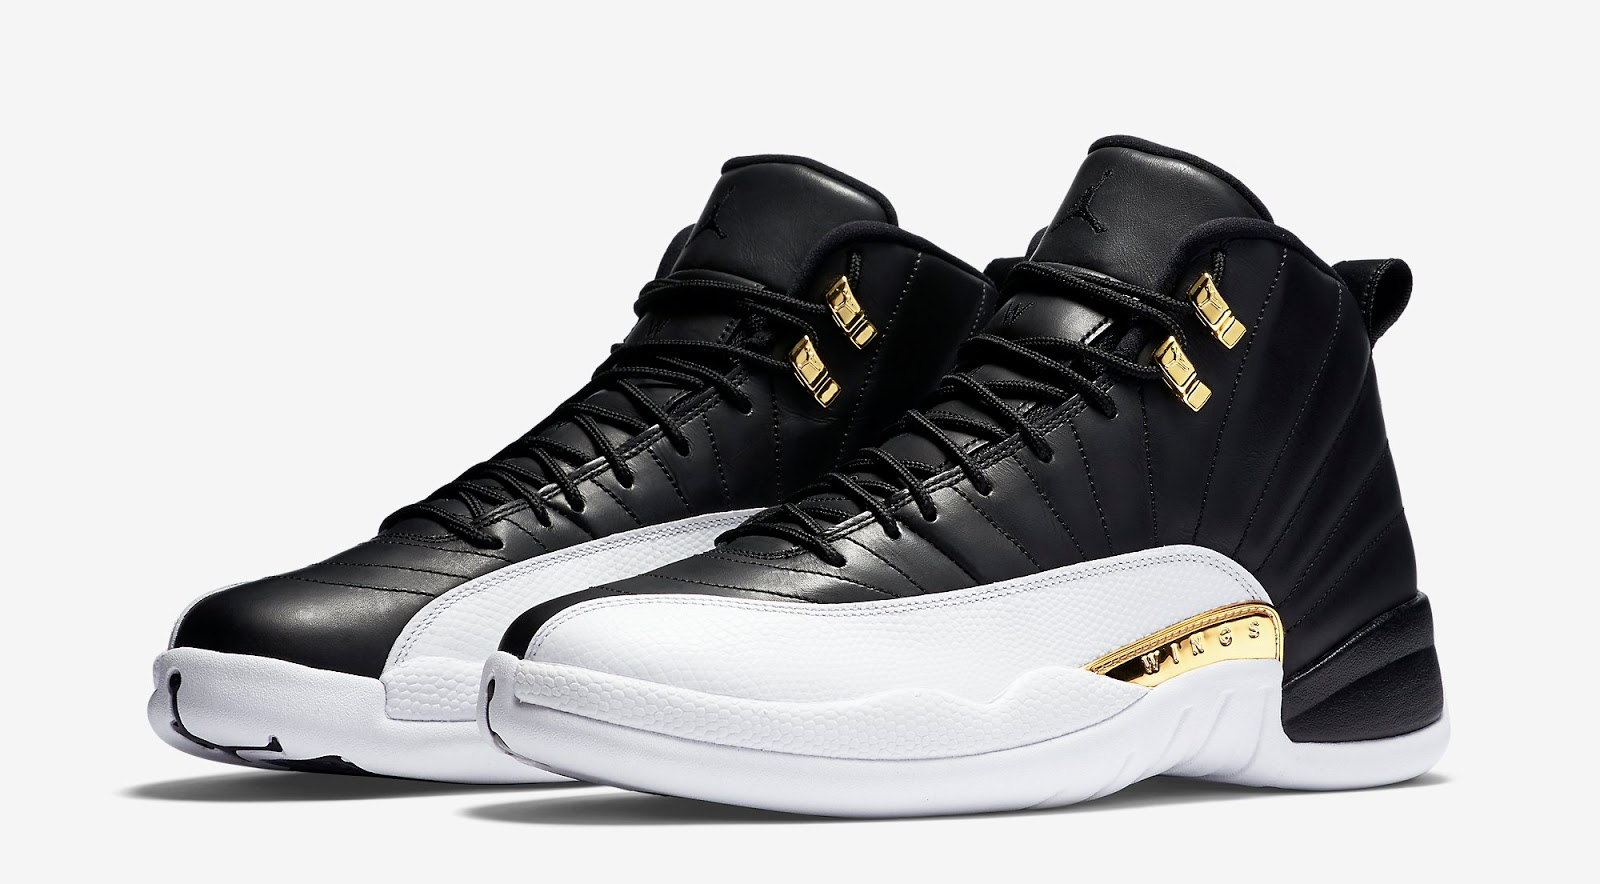 jordan 12 retro black and gold white wings